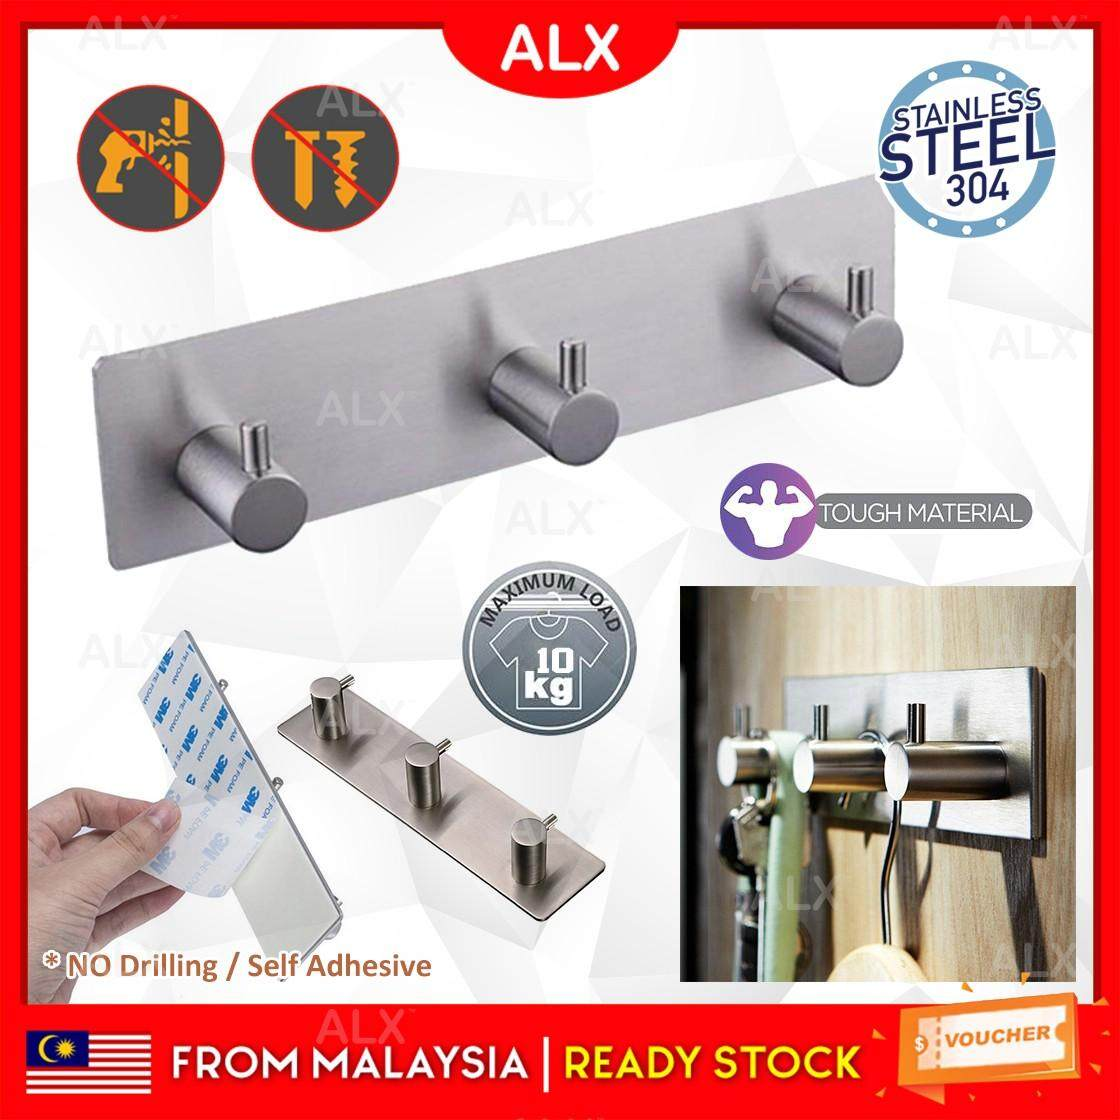 ALX Malaysia No-Drill 3M Self Adhesive Strong Hook 304 Stainless Steel Key Rack 3-Hook Rail Hotel Kitchen Bathroom Storage Organizer Wall Mount Hangers